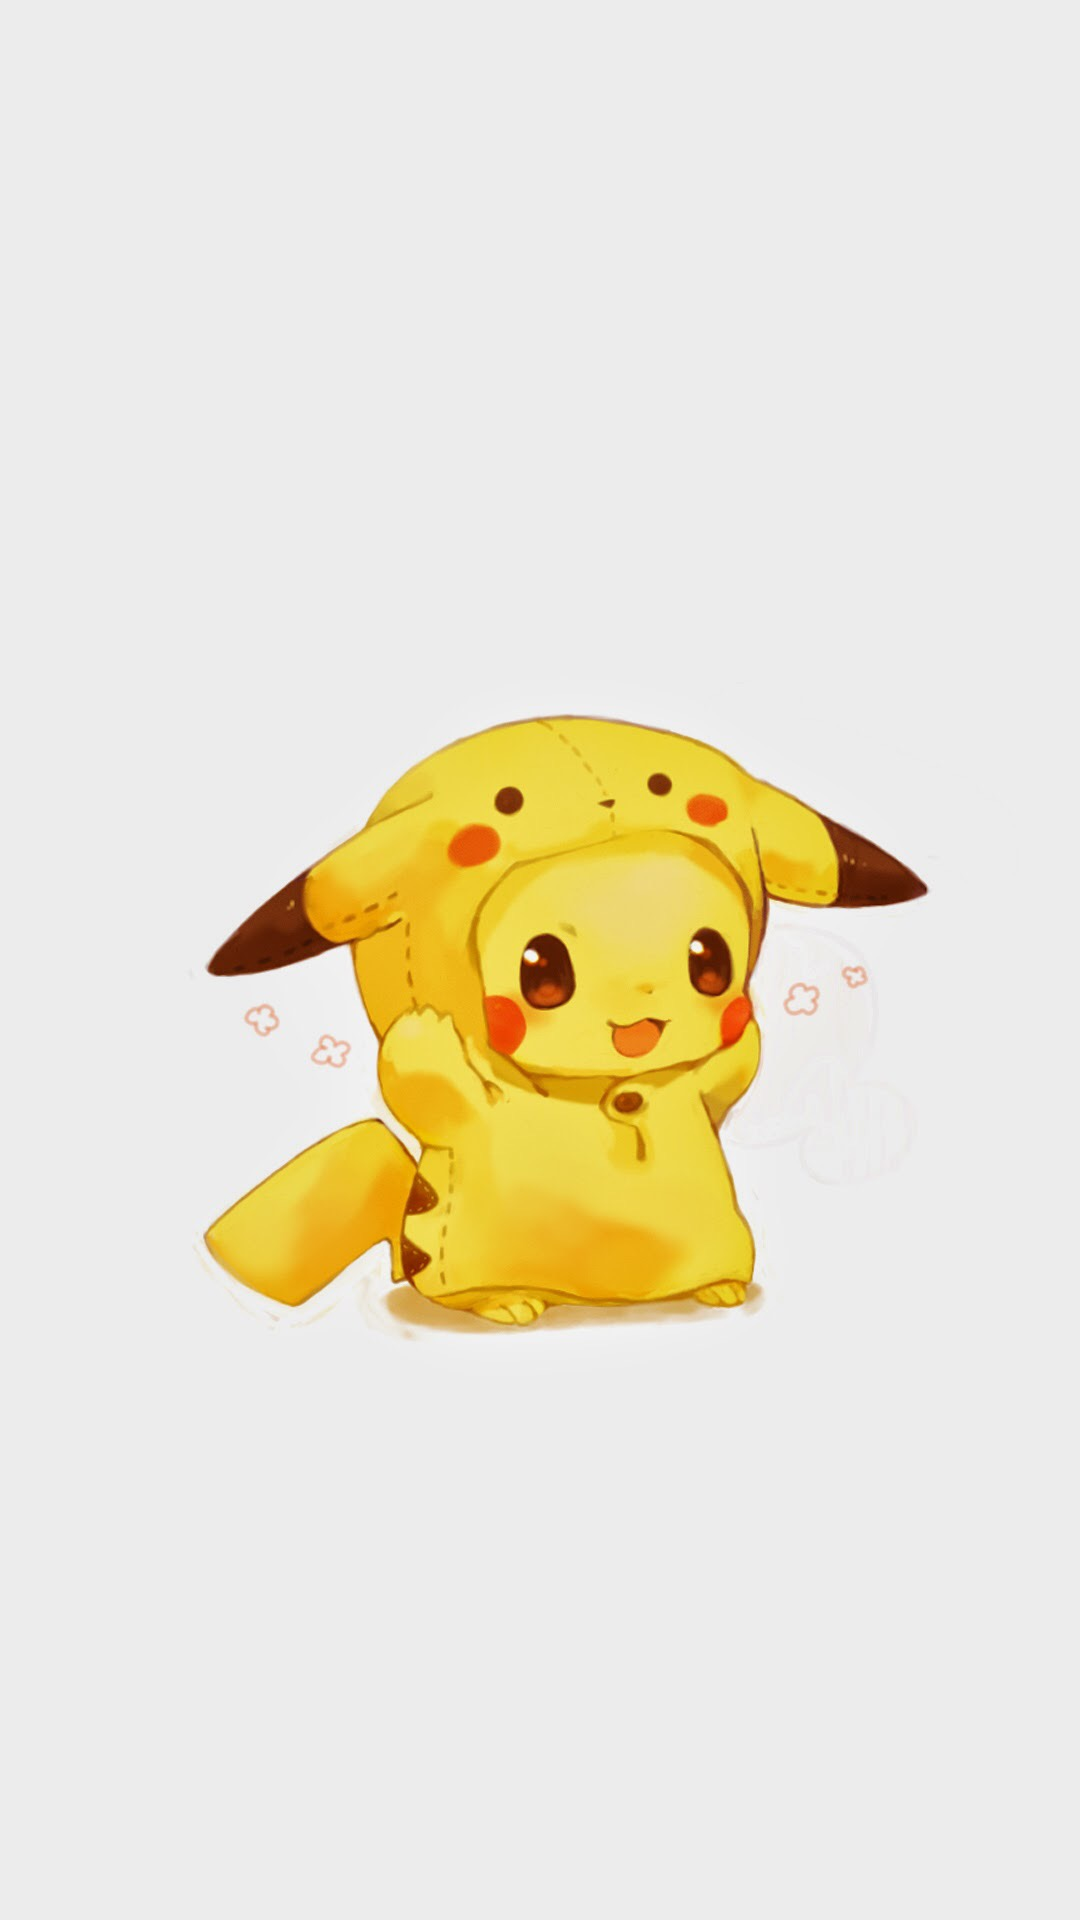 Cute-Pikachu-Download-more-awesome-Pokemon-iphone-pretty-wallpaper-wp440839